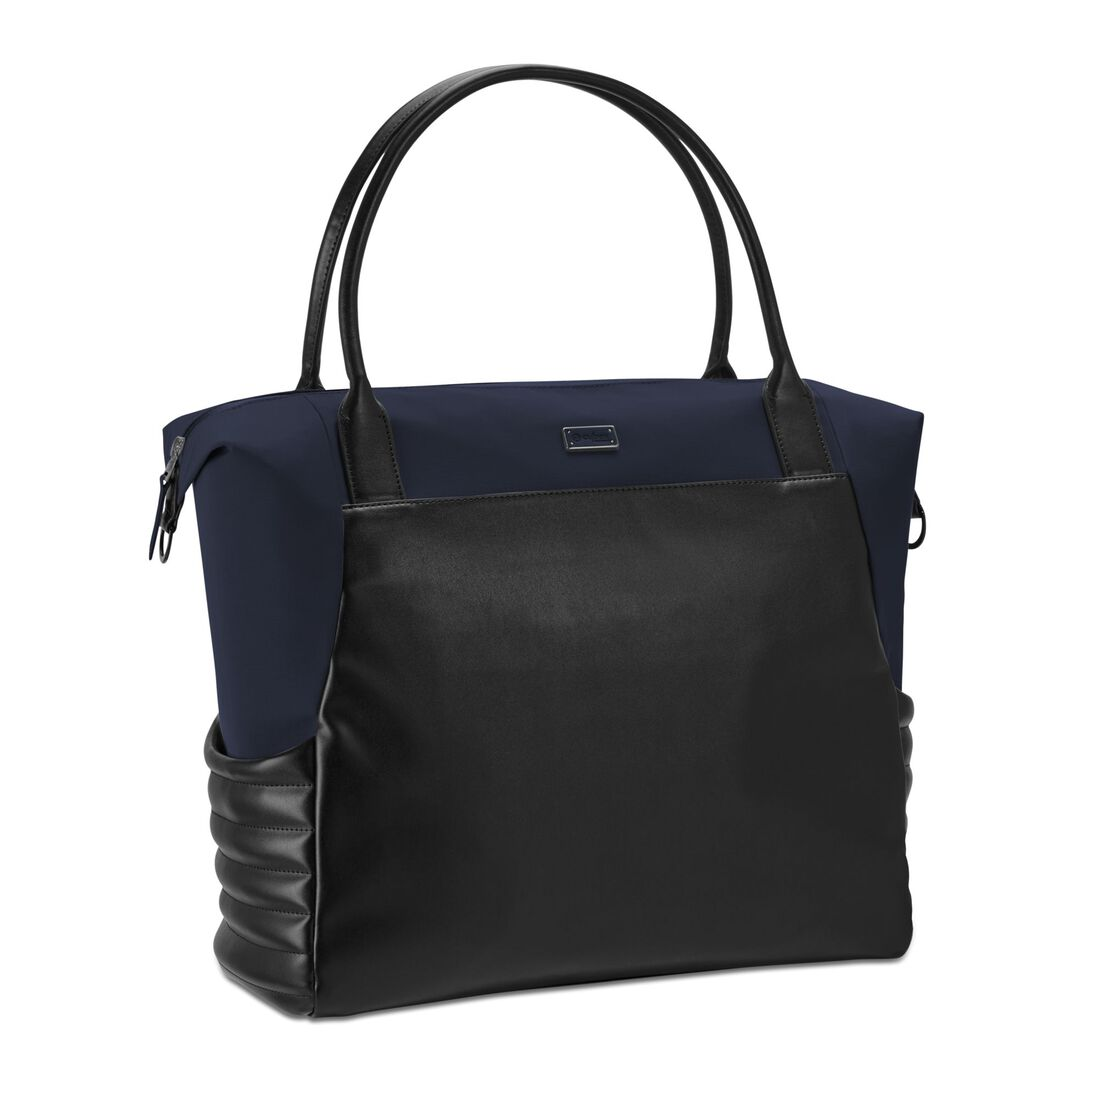 CYBEX Priam Changing Bag - Nautical Blue in Nautical Blue large image number 1